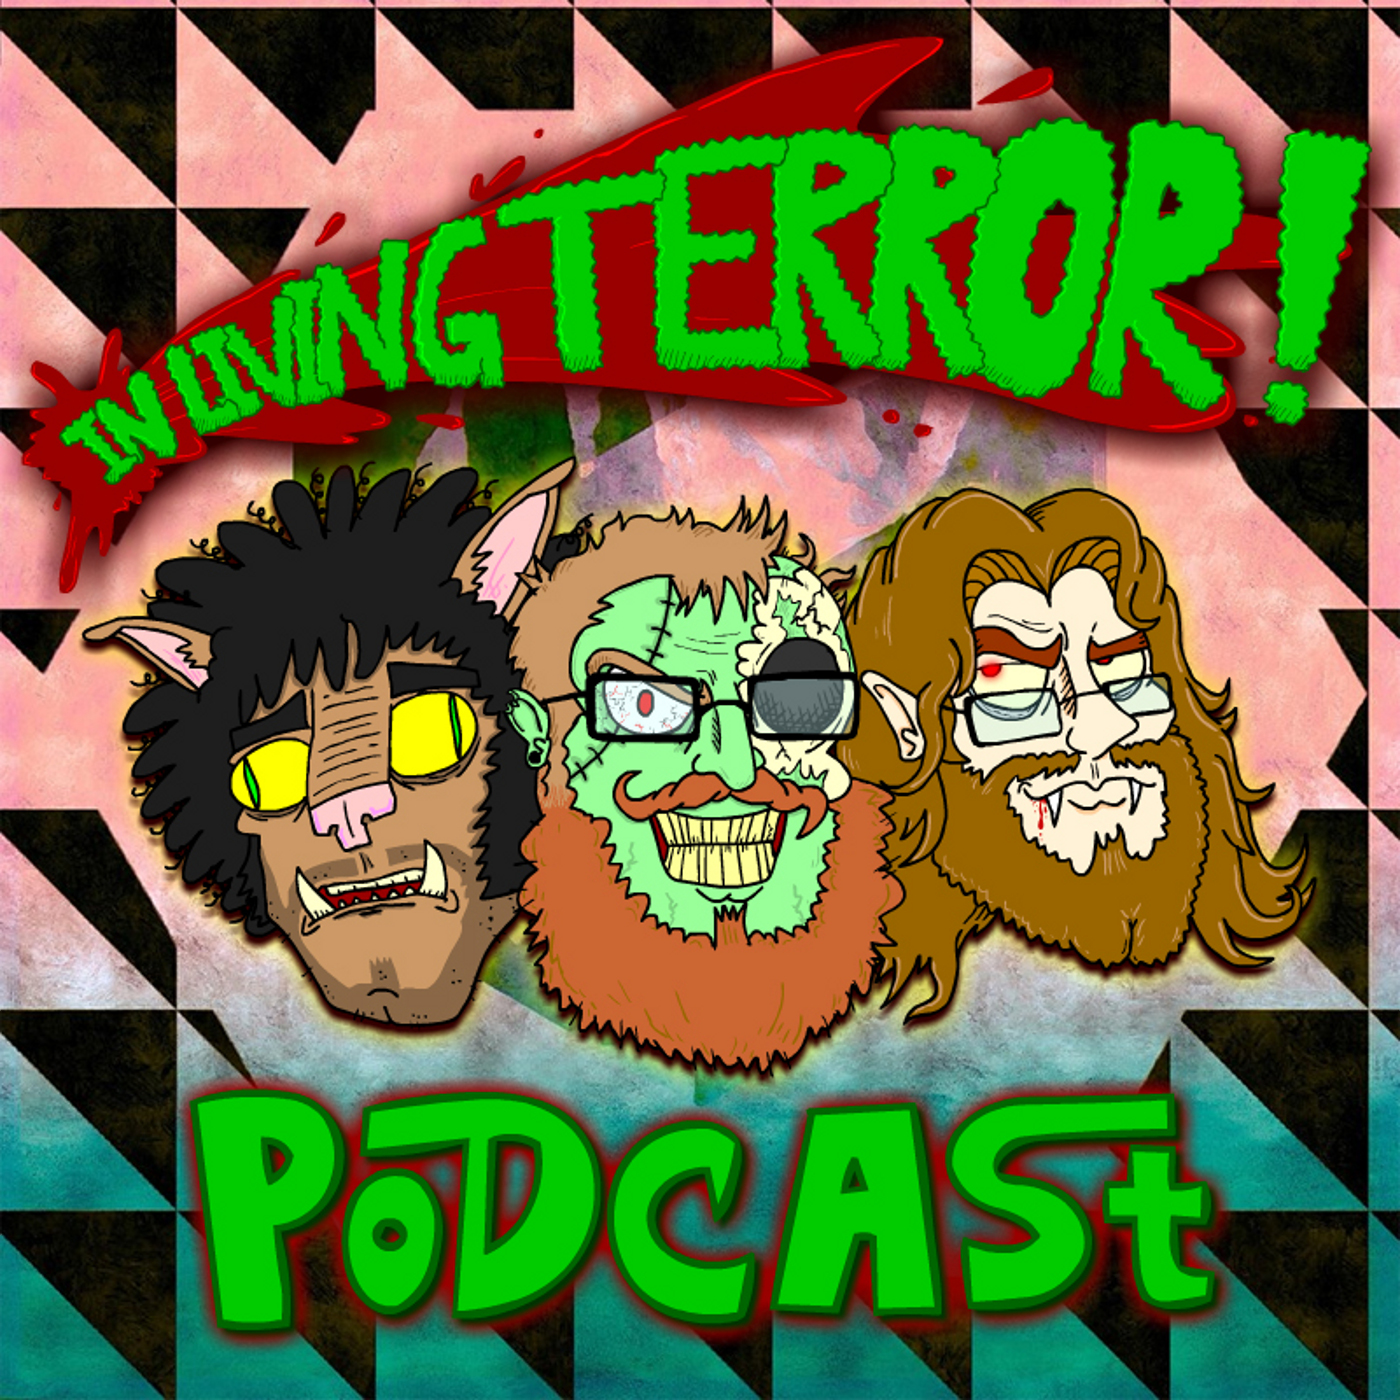 PODCAST! - IN LIVING TERROR